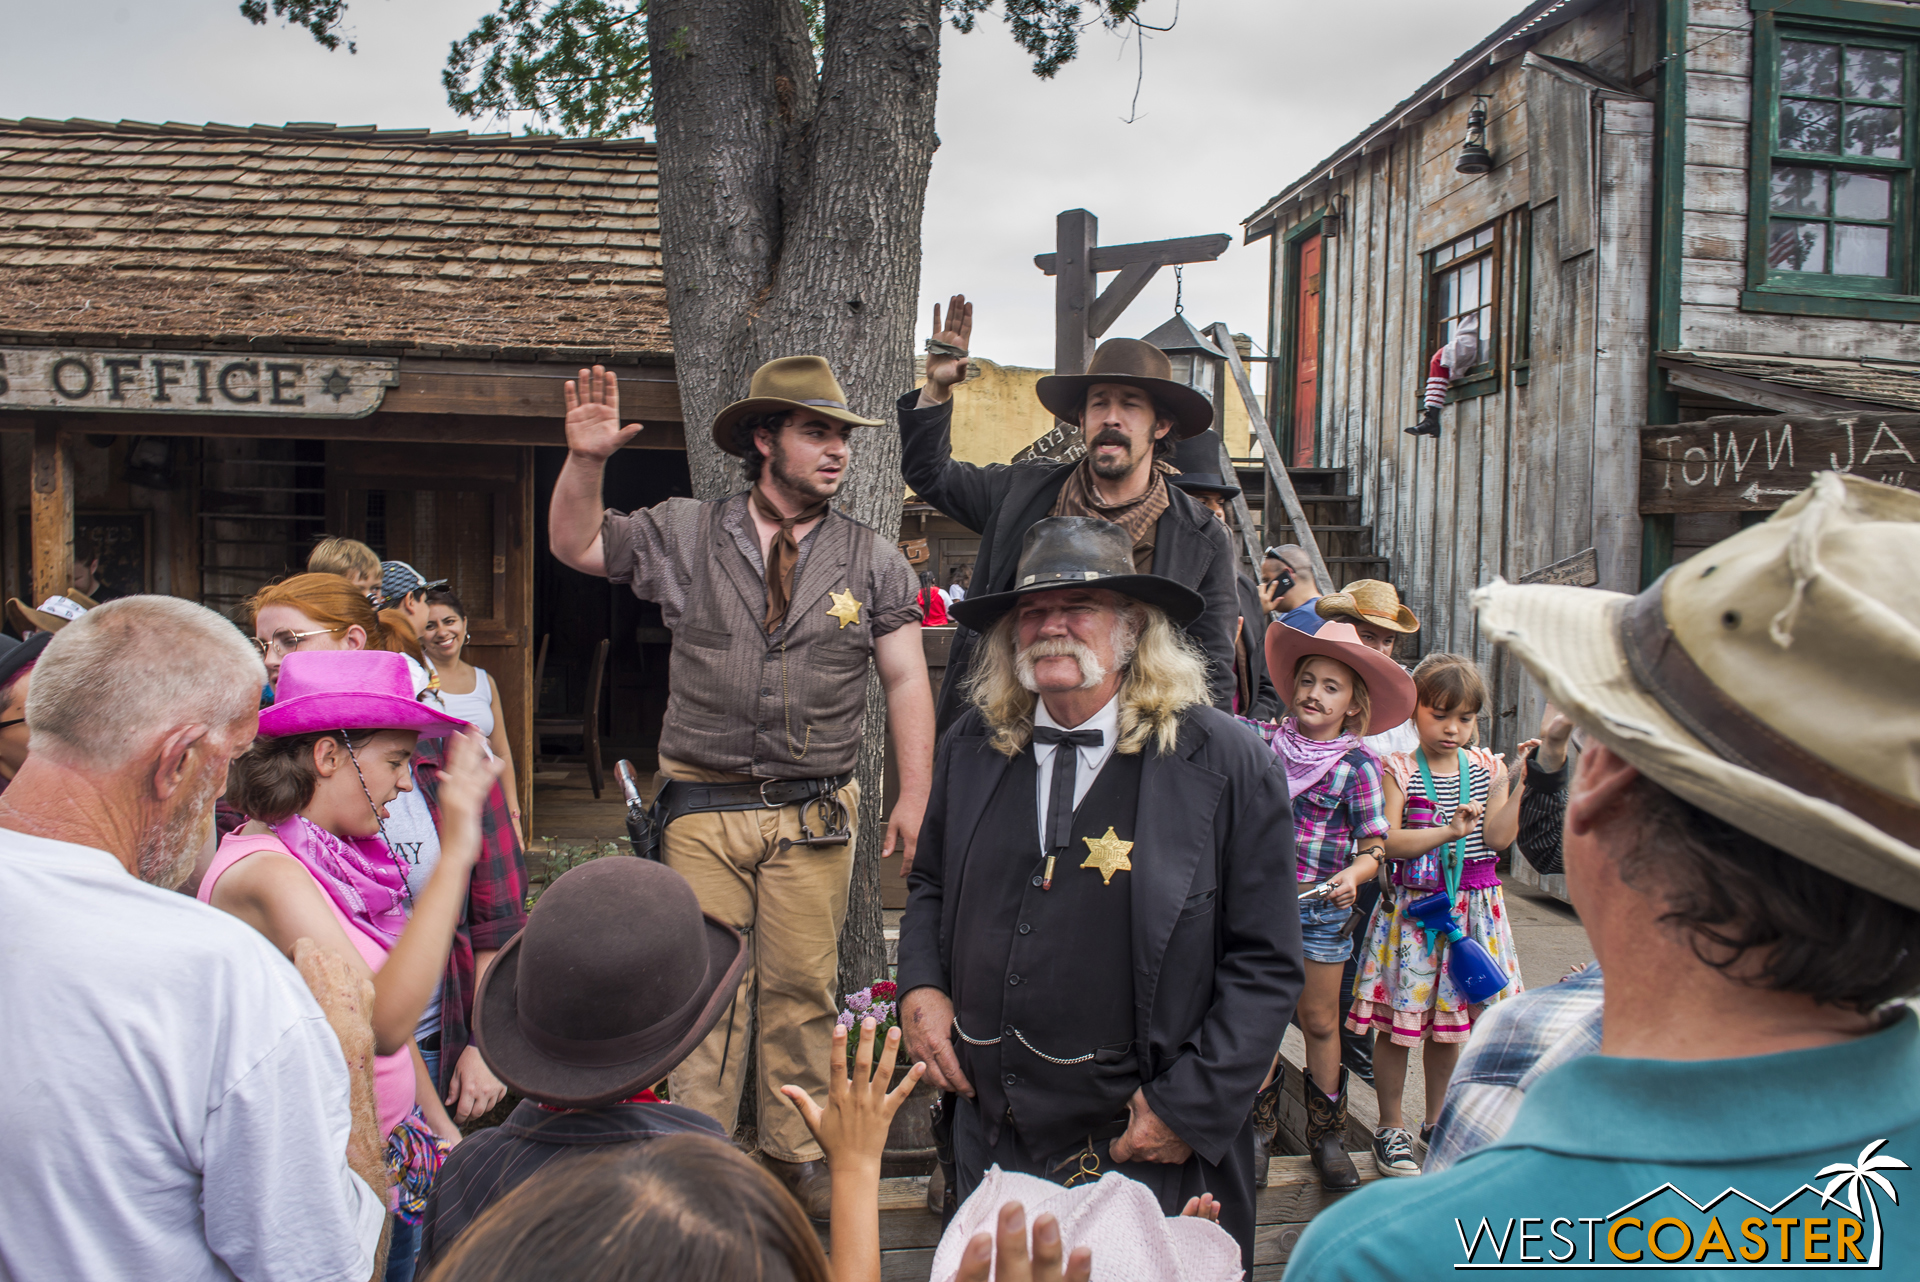 Word arrives that the Mayfields have been spotted holed up a the Calico Saloon, so Sherrif Wheeler and his deputies deputize volunteer guests to help them capture the bandits.